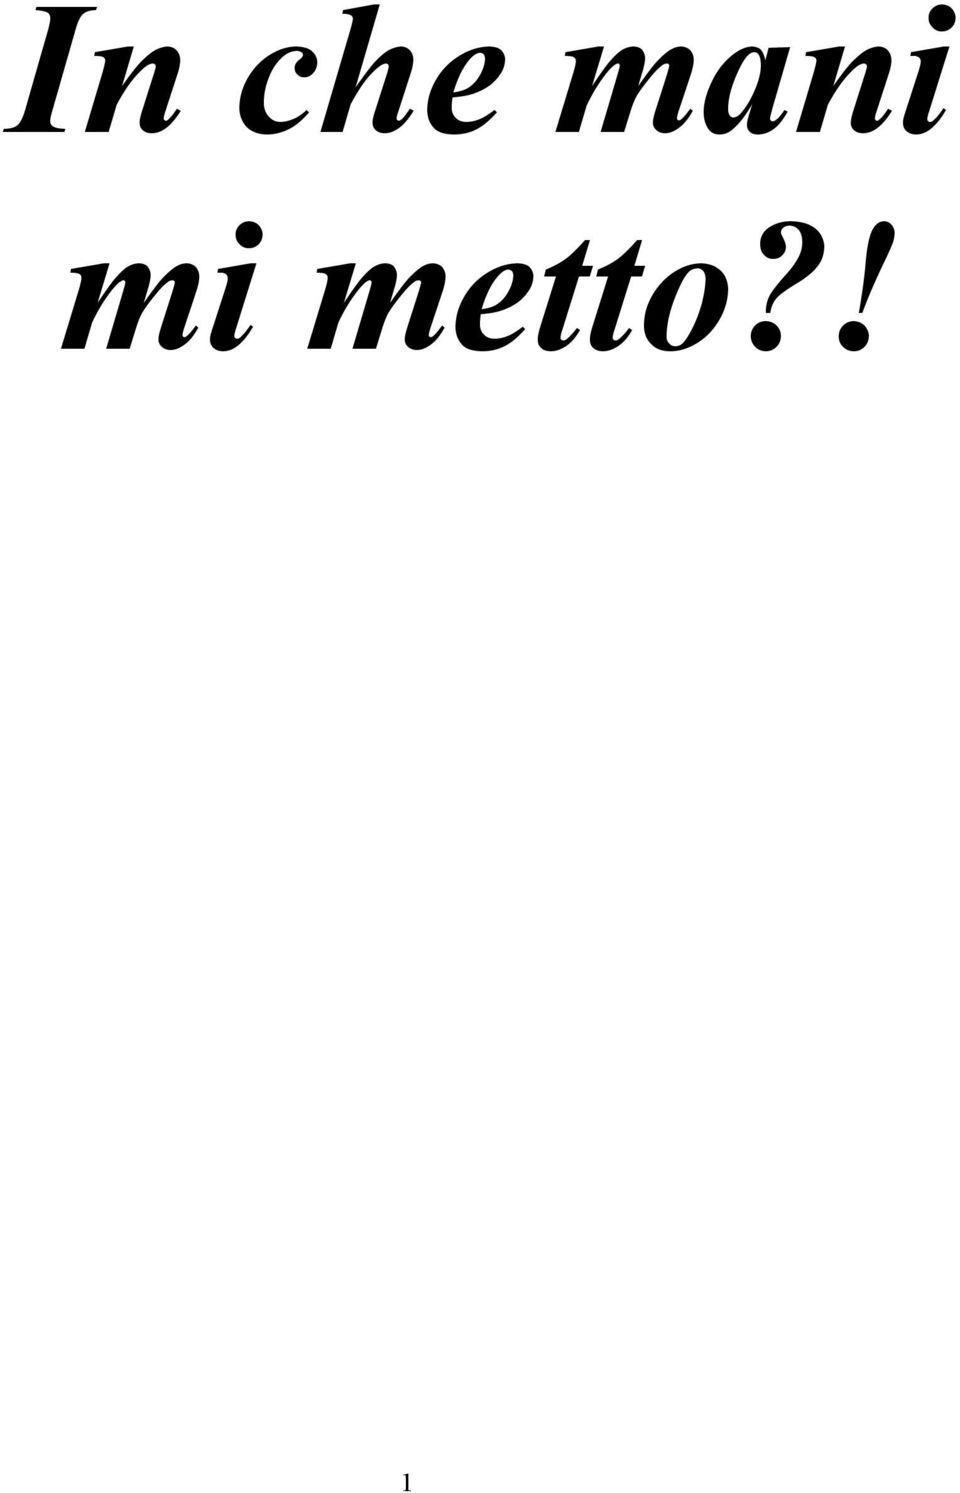 metto?! 1